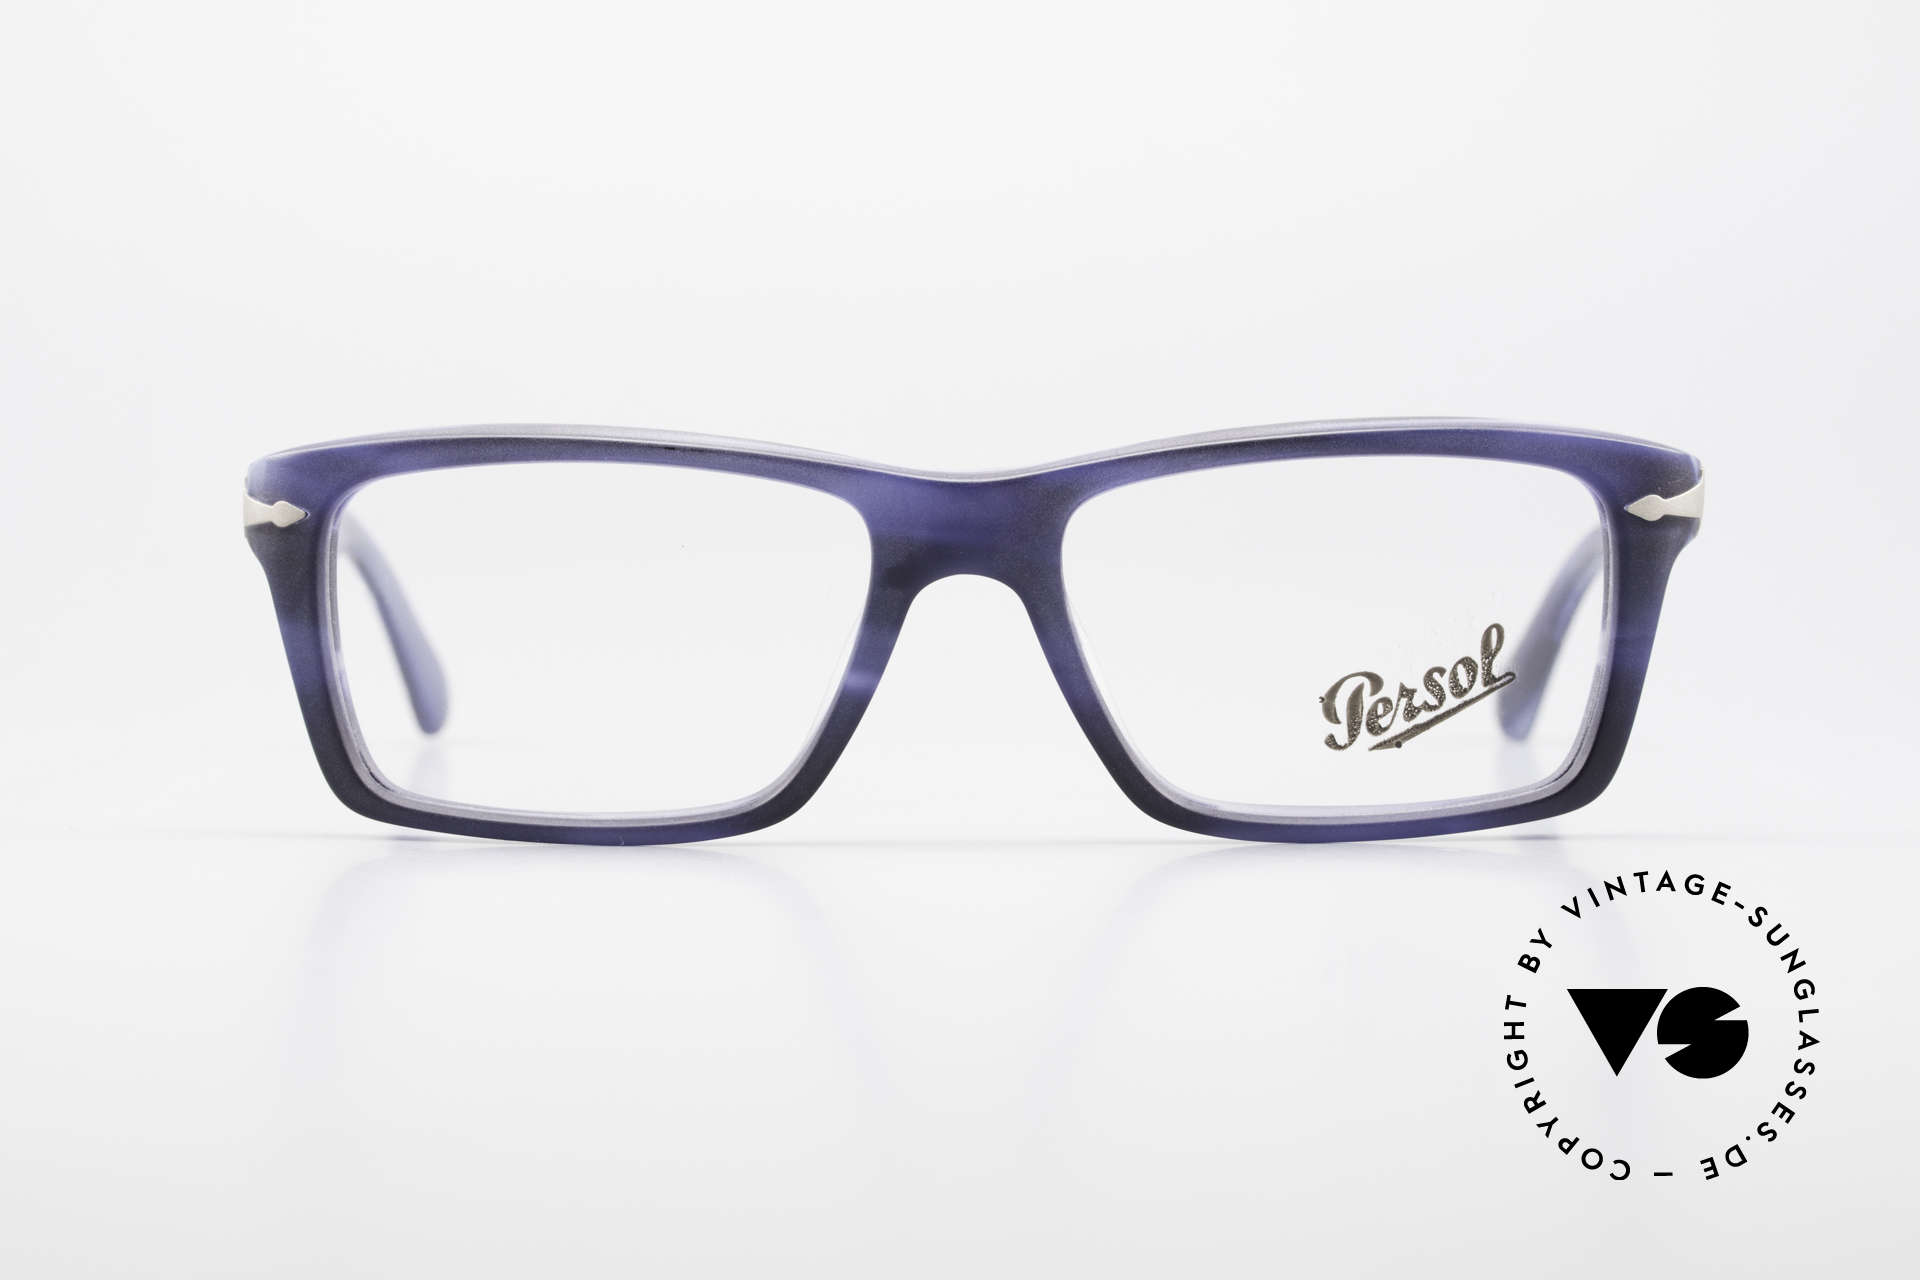 Persol 3060 Striking Eyeglasses For Men, classic timeless design with interesting coloring, Made for Men